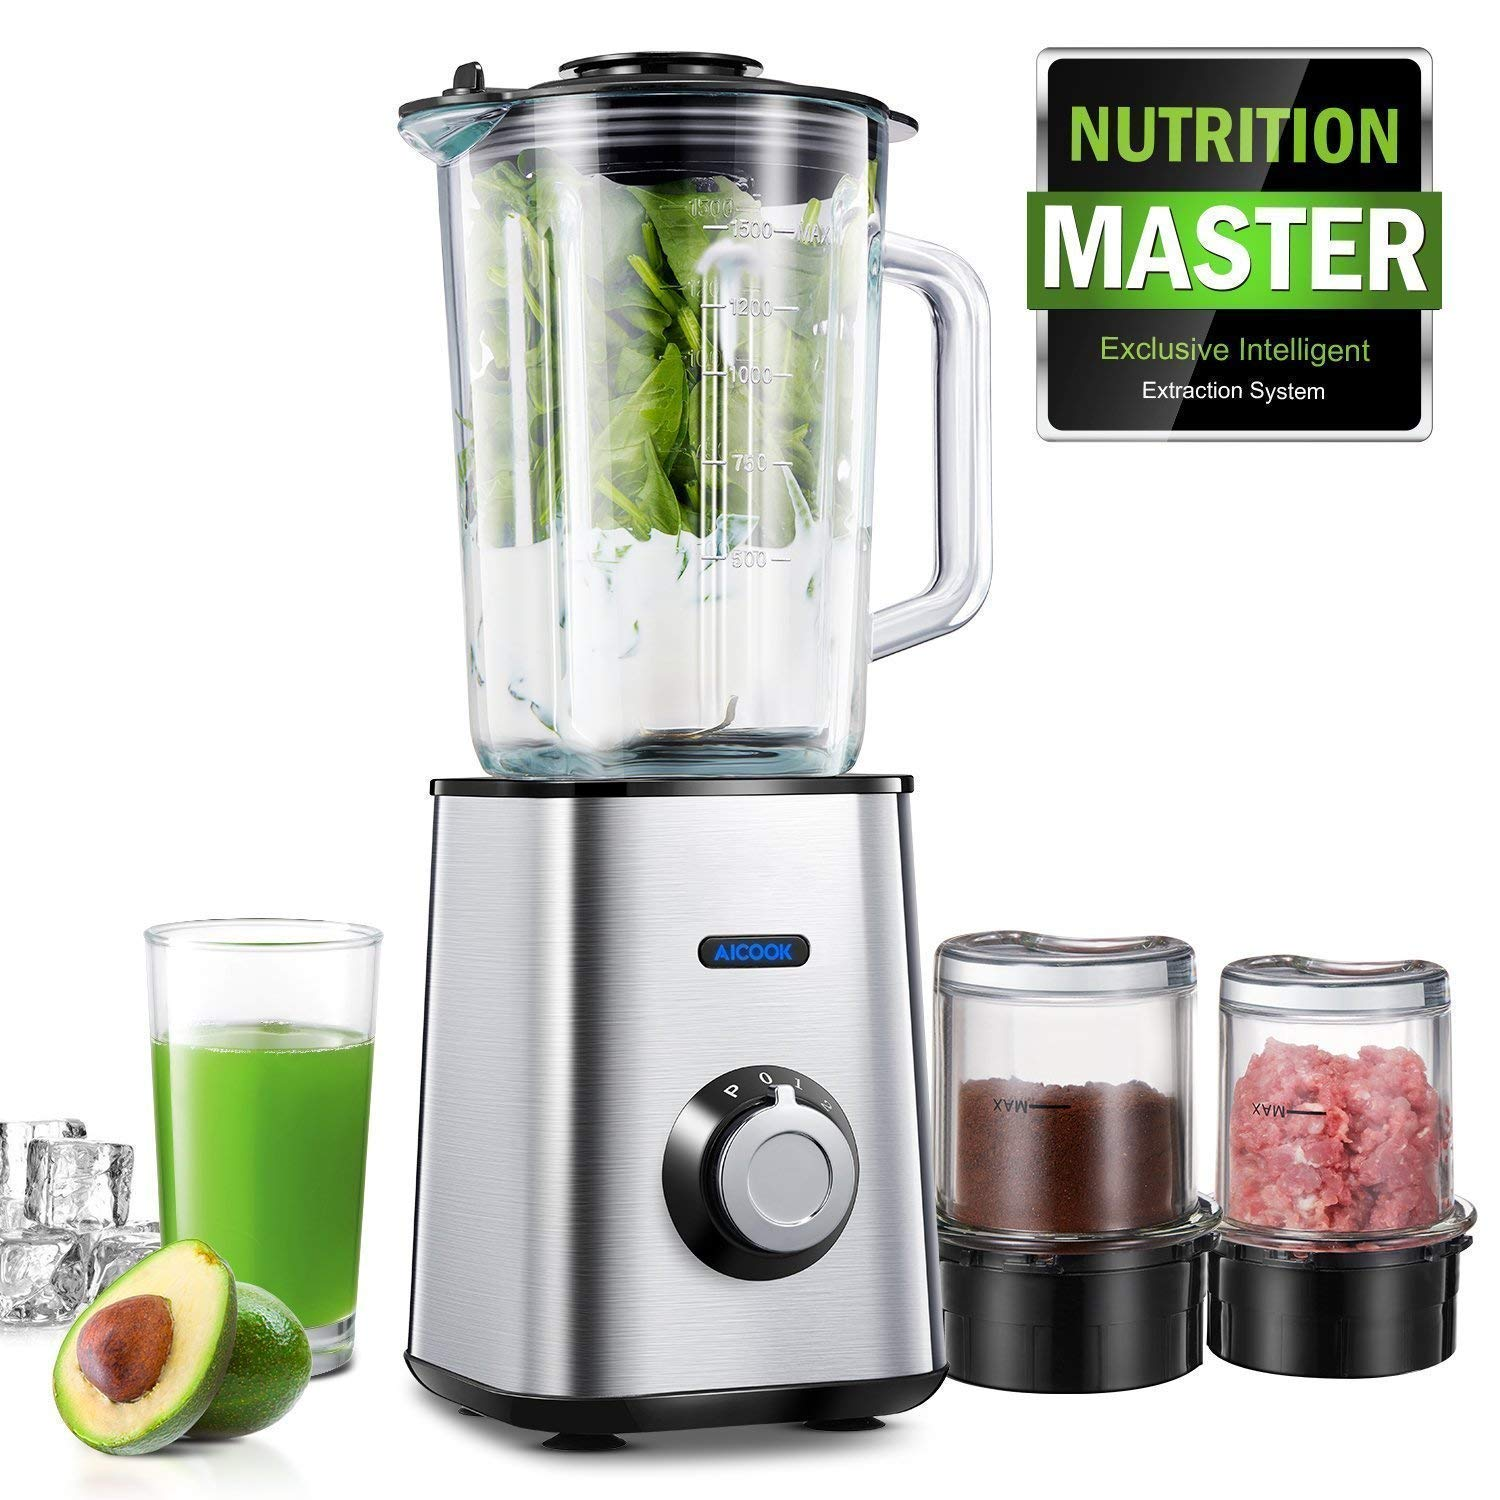 Aicook Blender, Smoothie Blender 3 in 1, 51.5oz Glass Blender, 8.5oz Coffee Grinder, and 8.5oz Food Chopper, 6 Titanium Blades, Stainless Steel Base, for Frozen Drinks and Smoothies